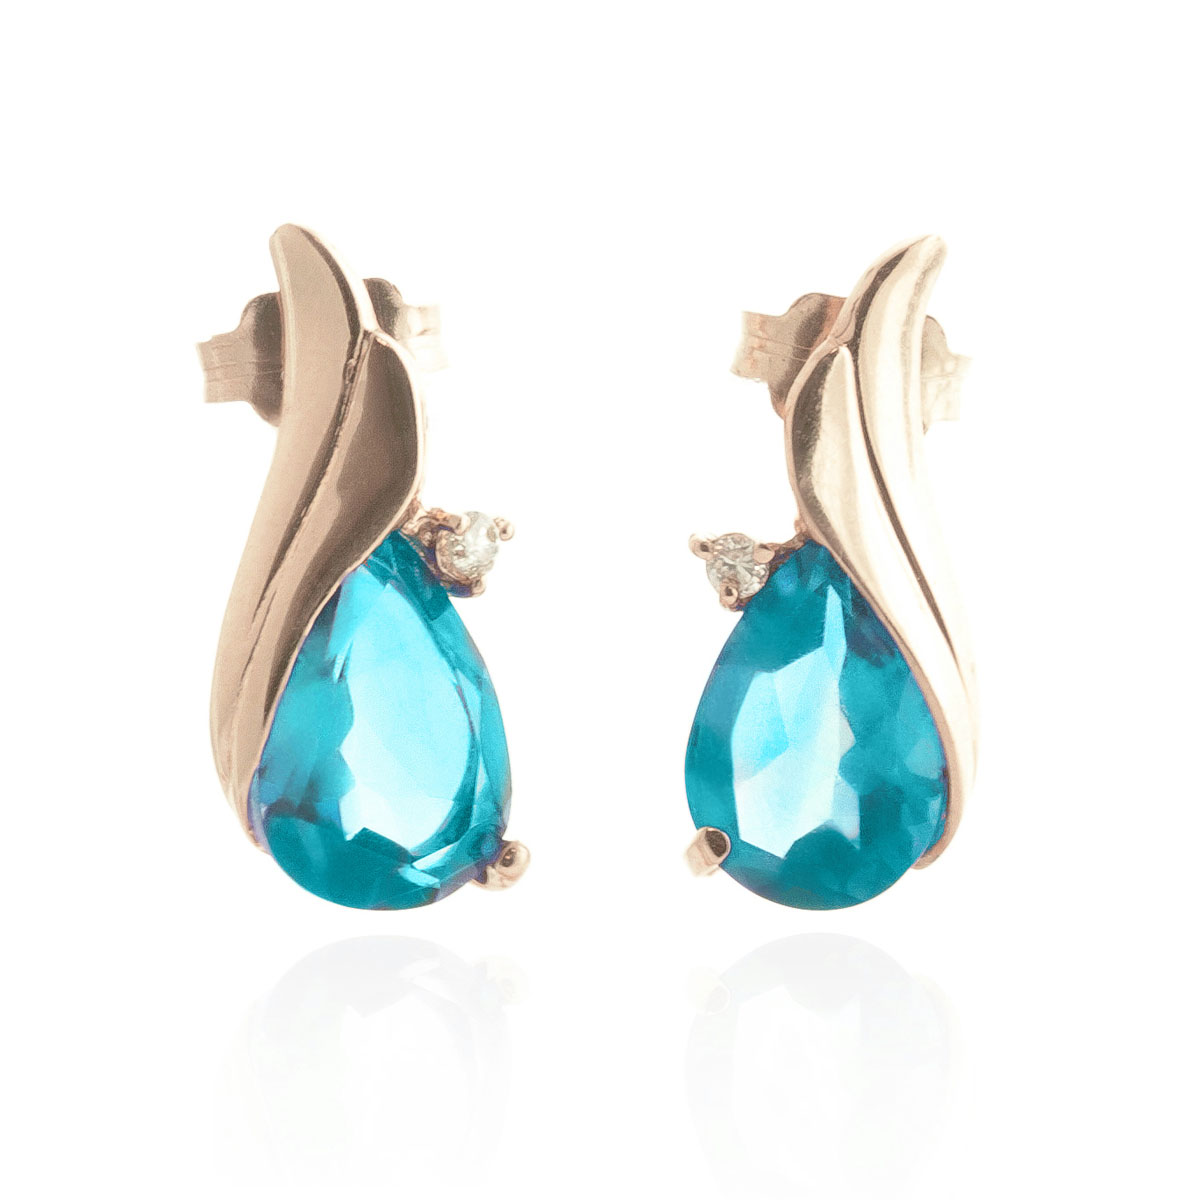 Blue Topaz Stud Earrings 5.06 ctw in 9ct Rose Gold